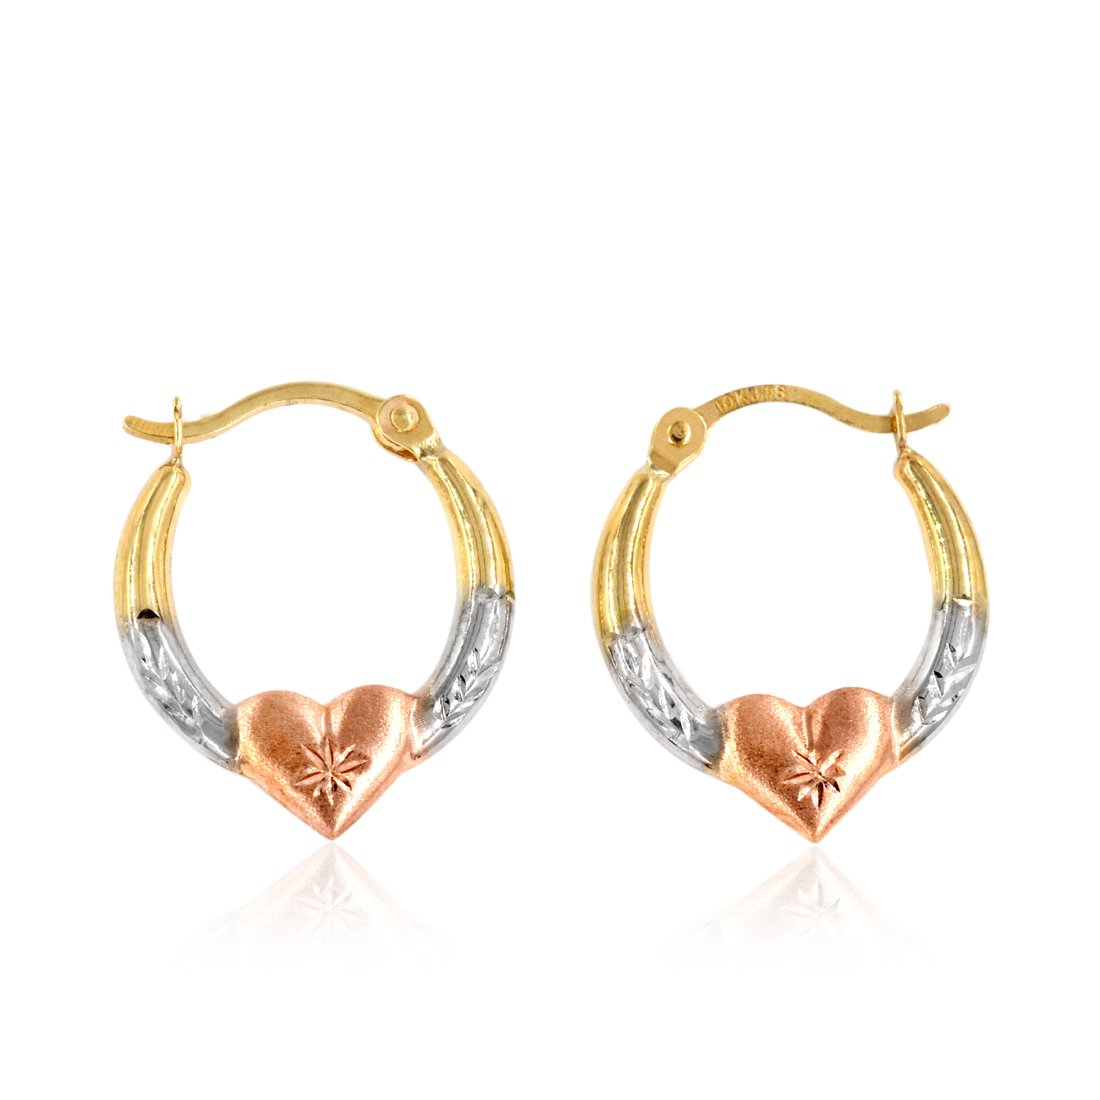 10K Gold Three-Tone Heart Creole Hoop Earrings